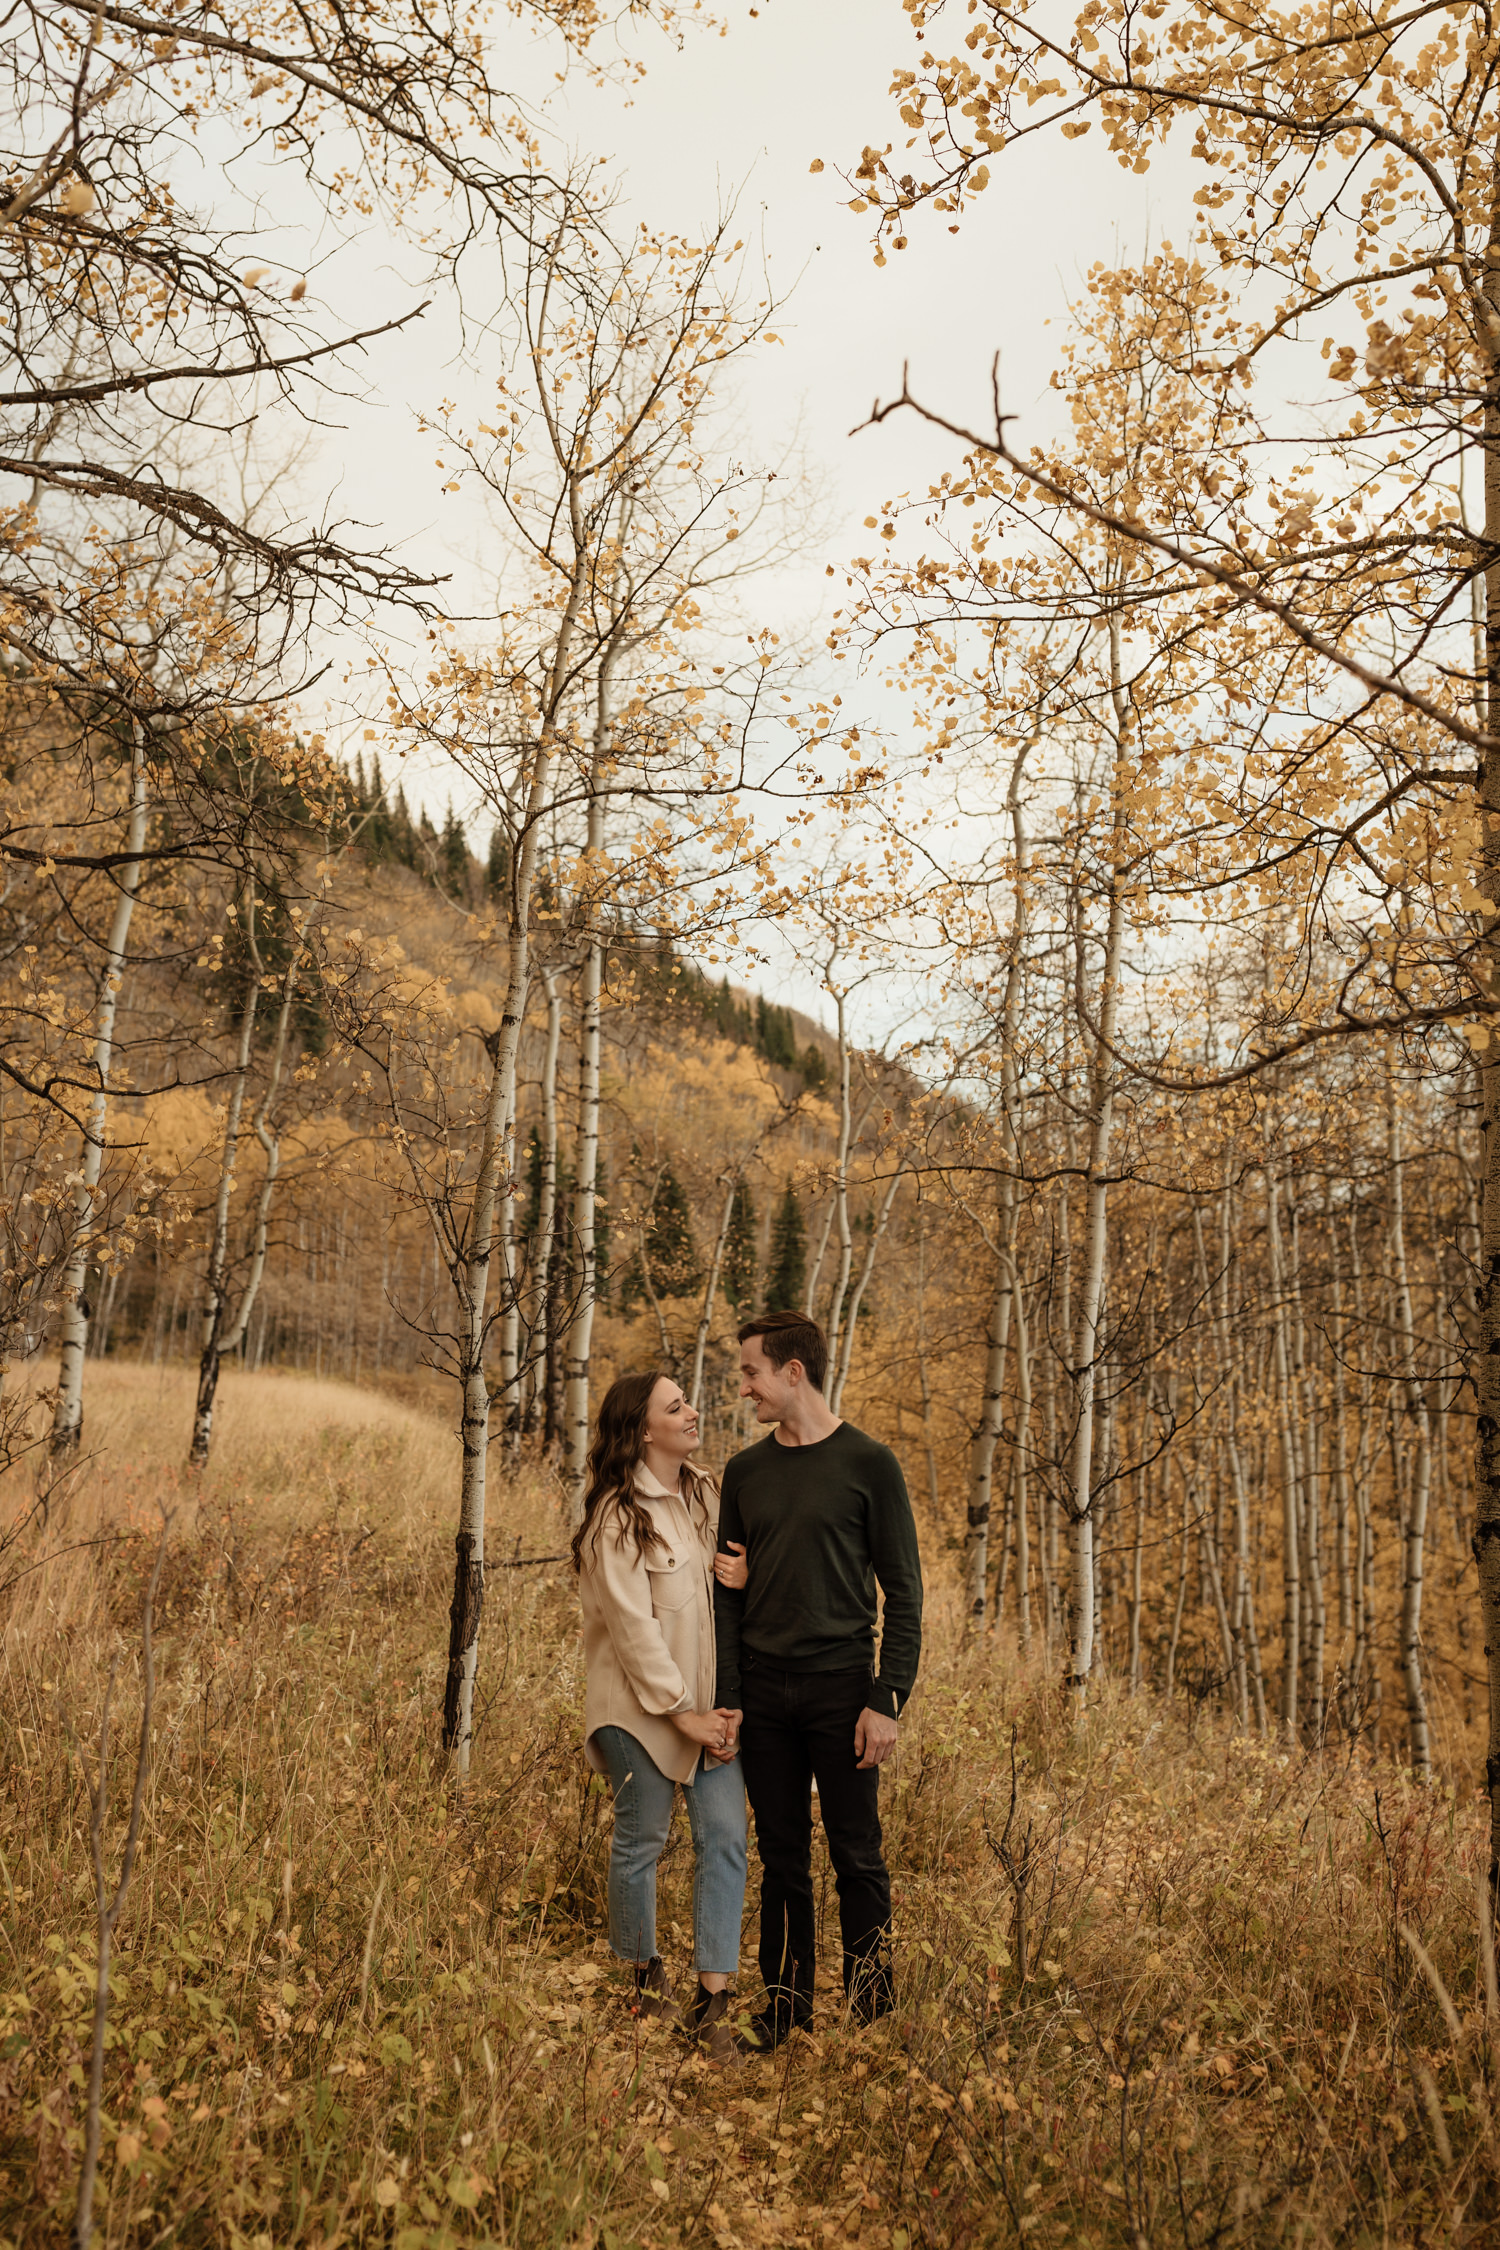 Kananaskis Fall Engagement Session at Bighorn Lookout